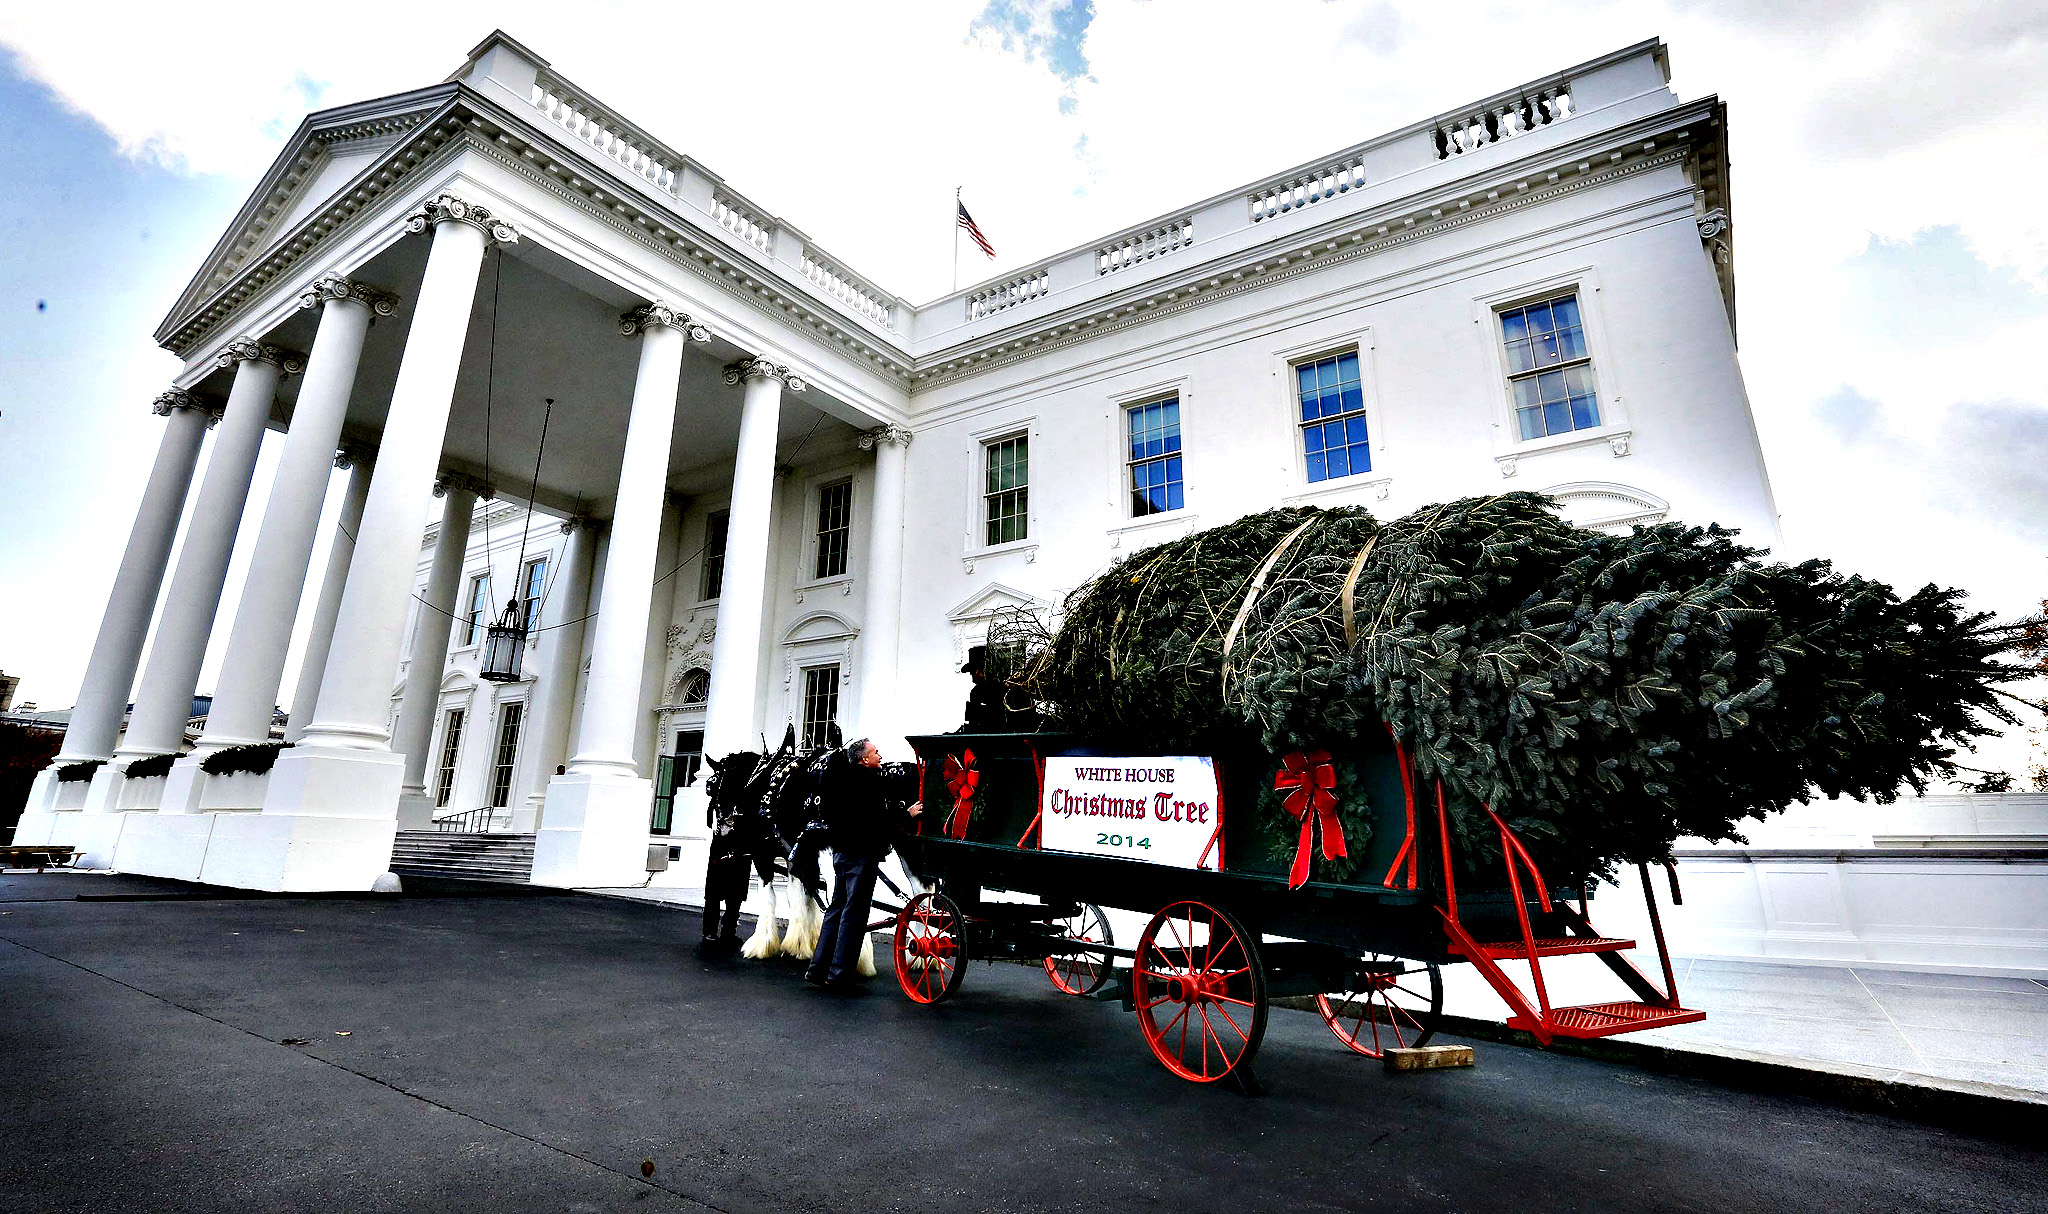 The official White House Christmas tree, from the Crystal Spring Tree Farm in Pennsylvania, sits next to the North Portico of the White House in Washington...The official White House Christmas tree, from the Crystal Spring Tree Farm in Pennsylvania, sits next to the North Portico of the White House in Washington, November 28, 2014.